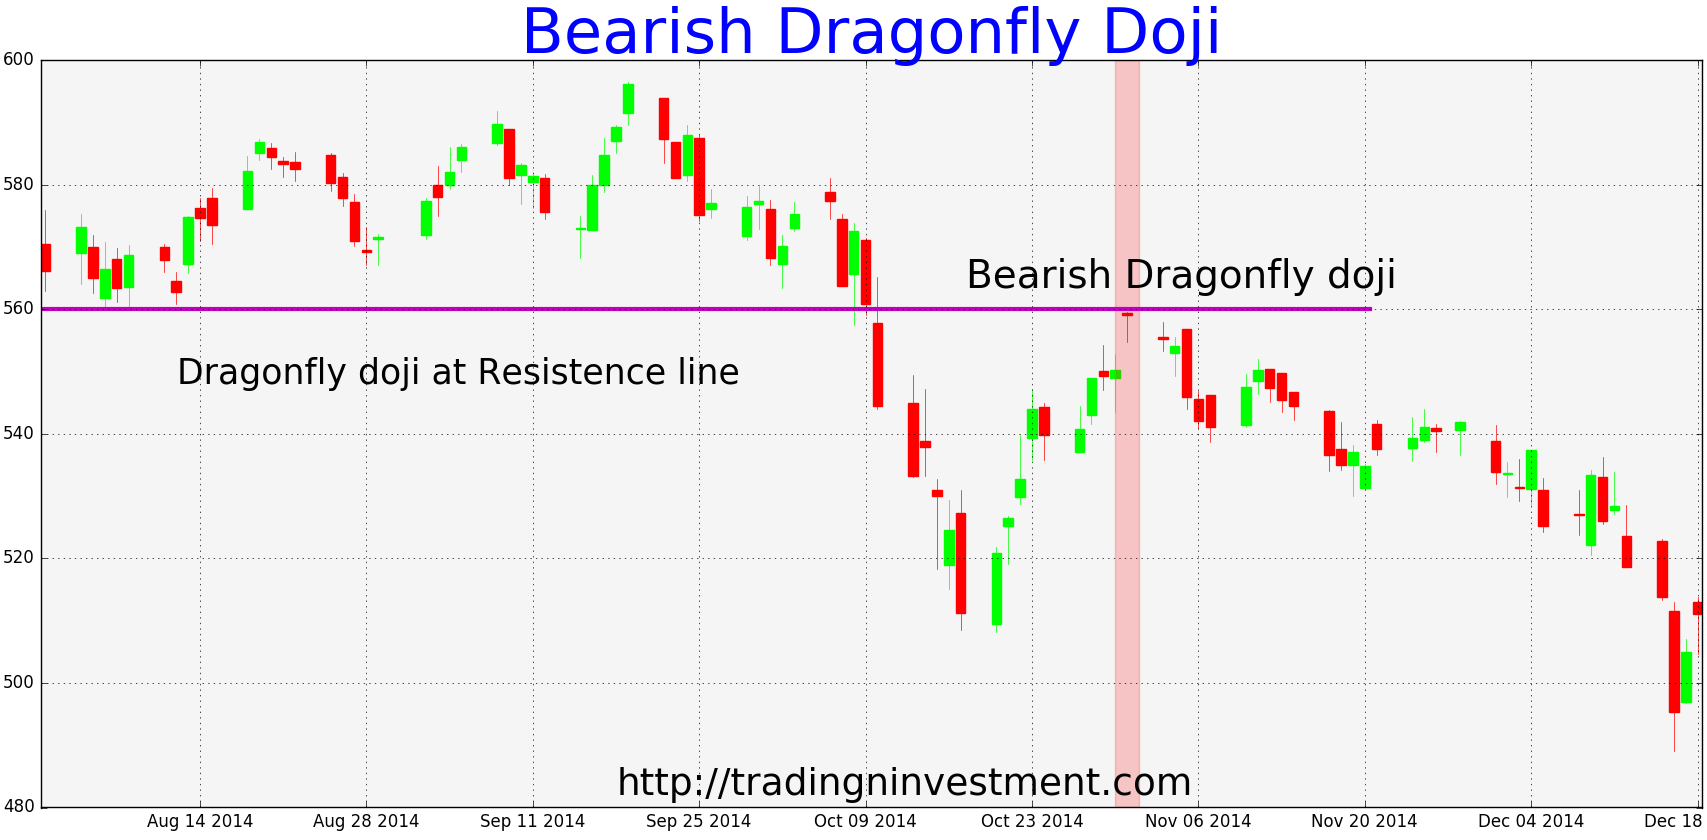 How Can You Scan For Doji Candlestick Patterns?